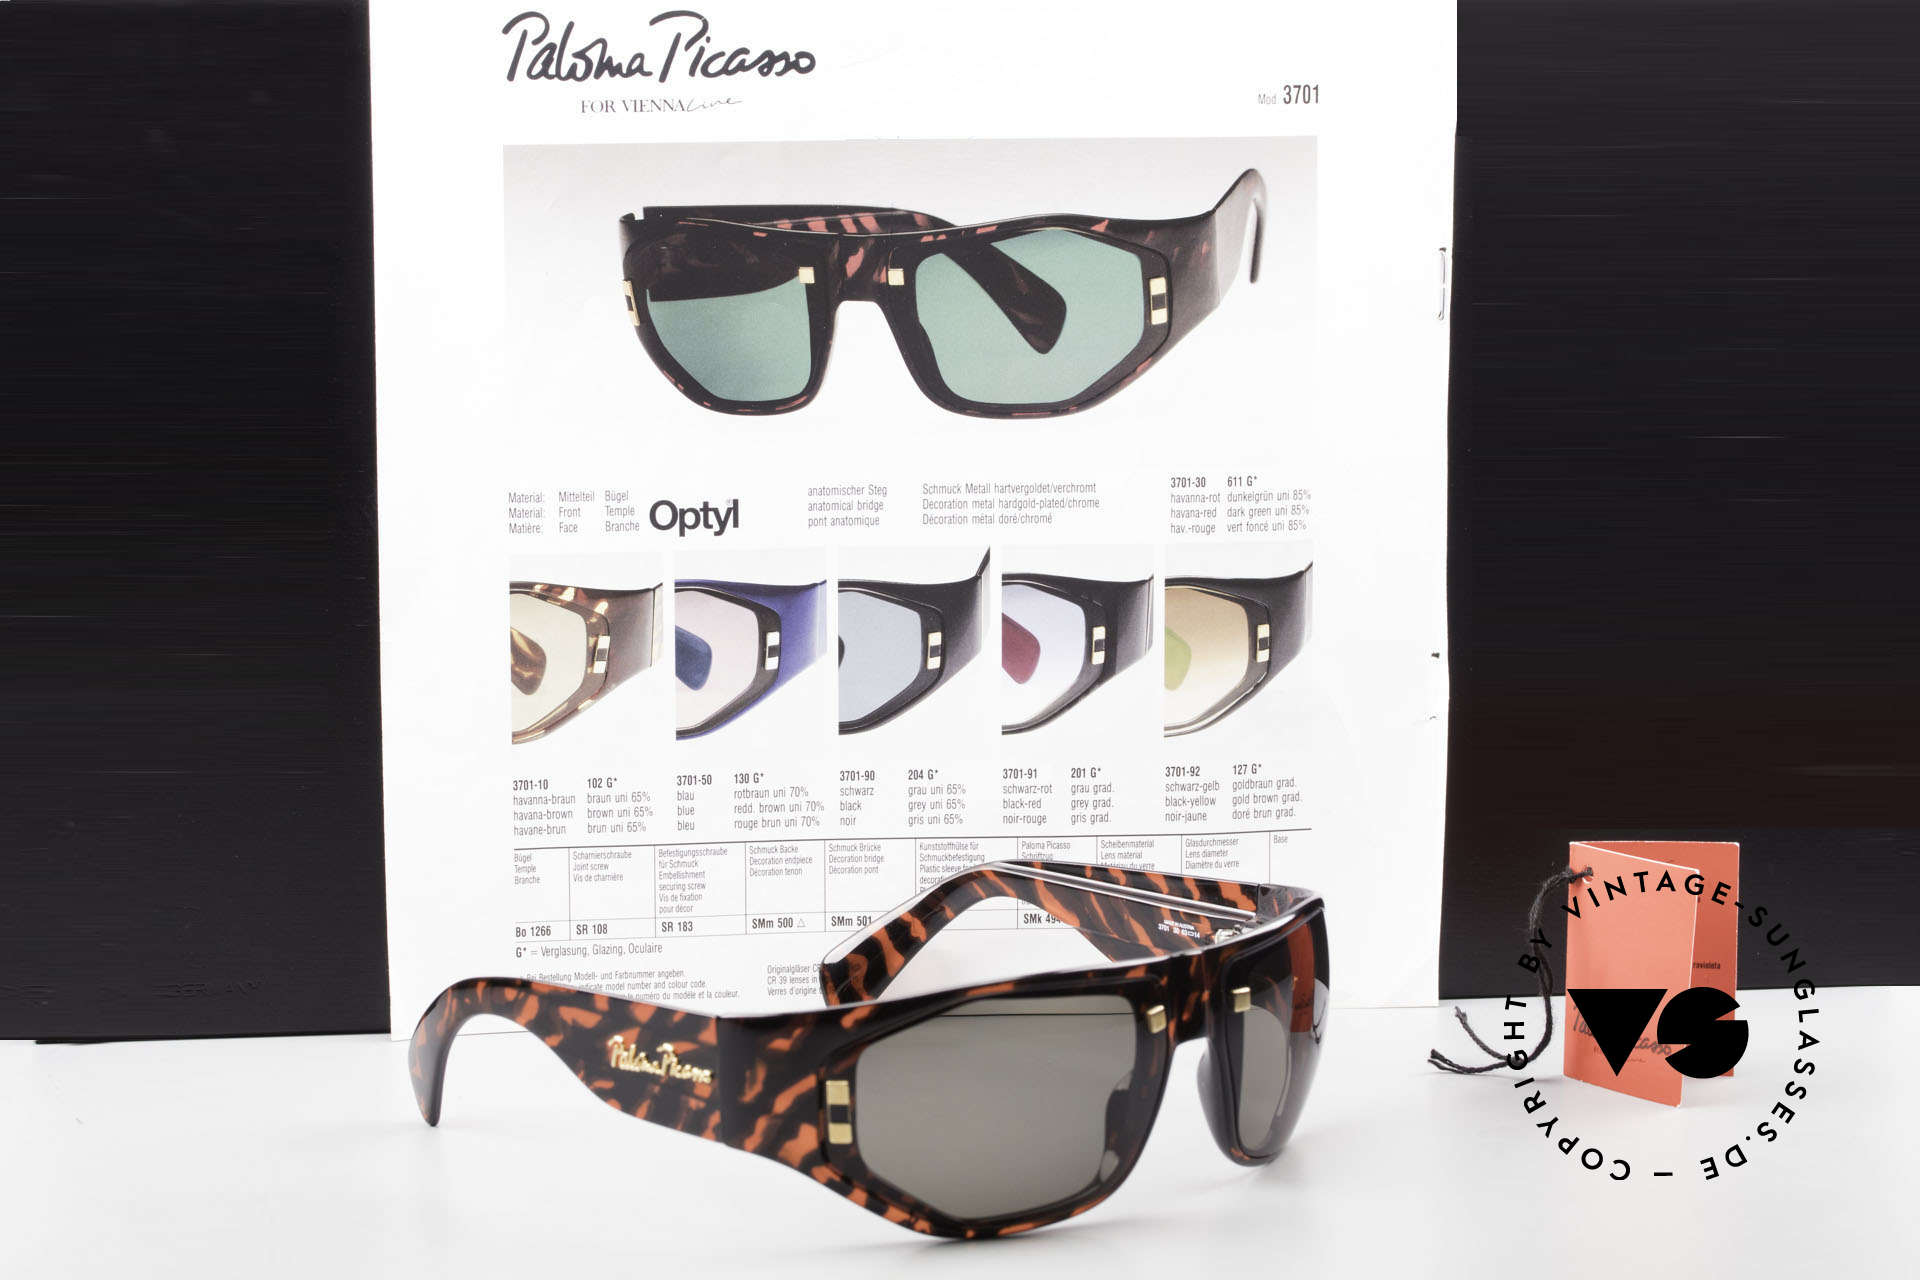 Paloma Picasso 3701 90's Wrap Sunglasses Ladies, Size: medium, Made for Women